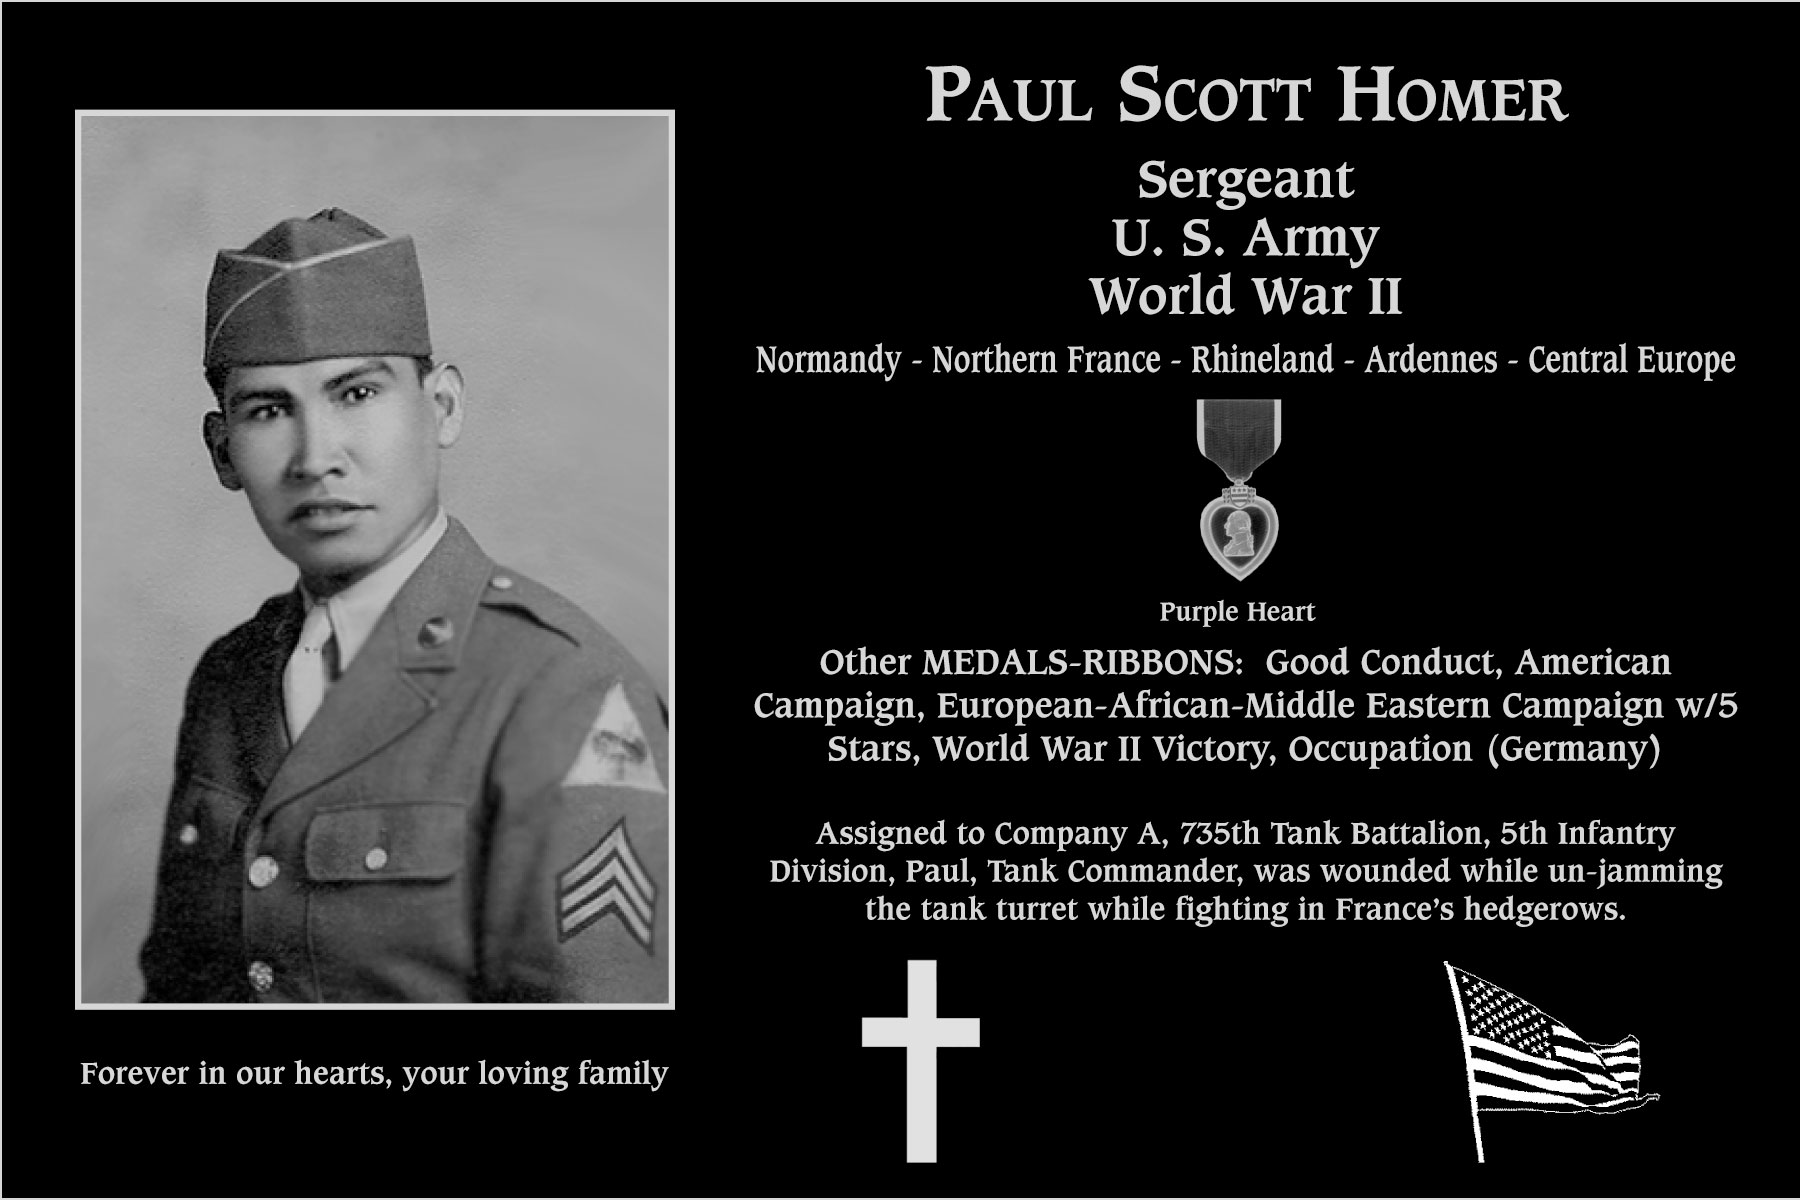 Paul Scott Homer